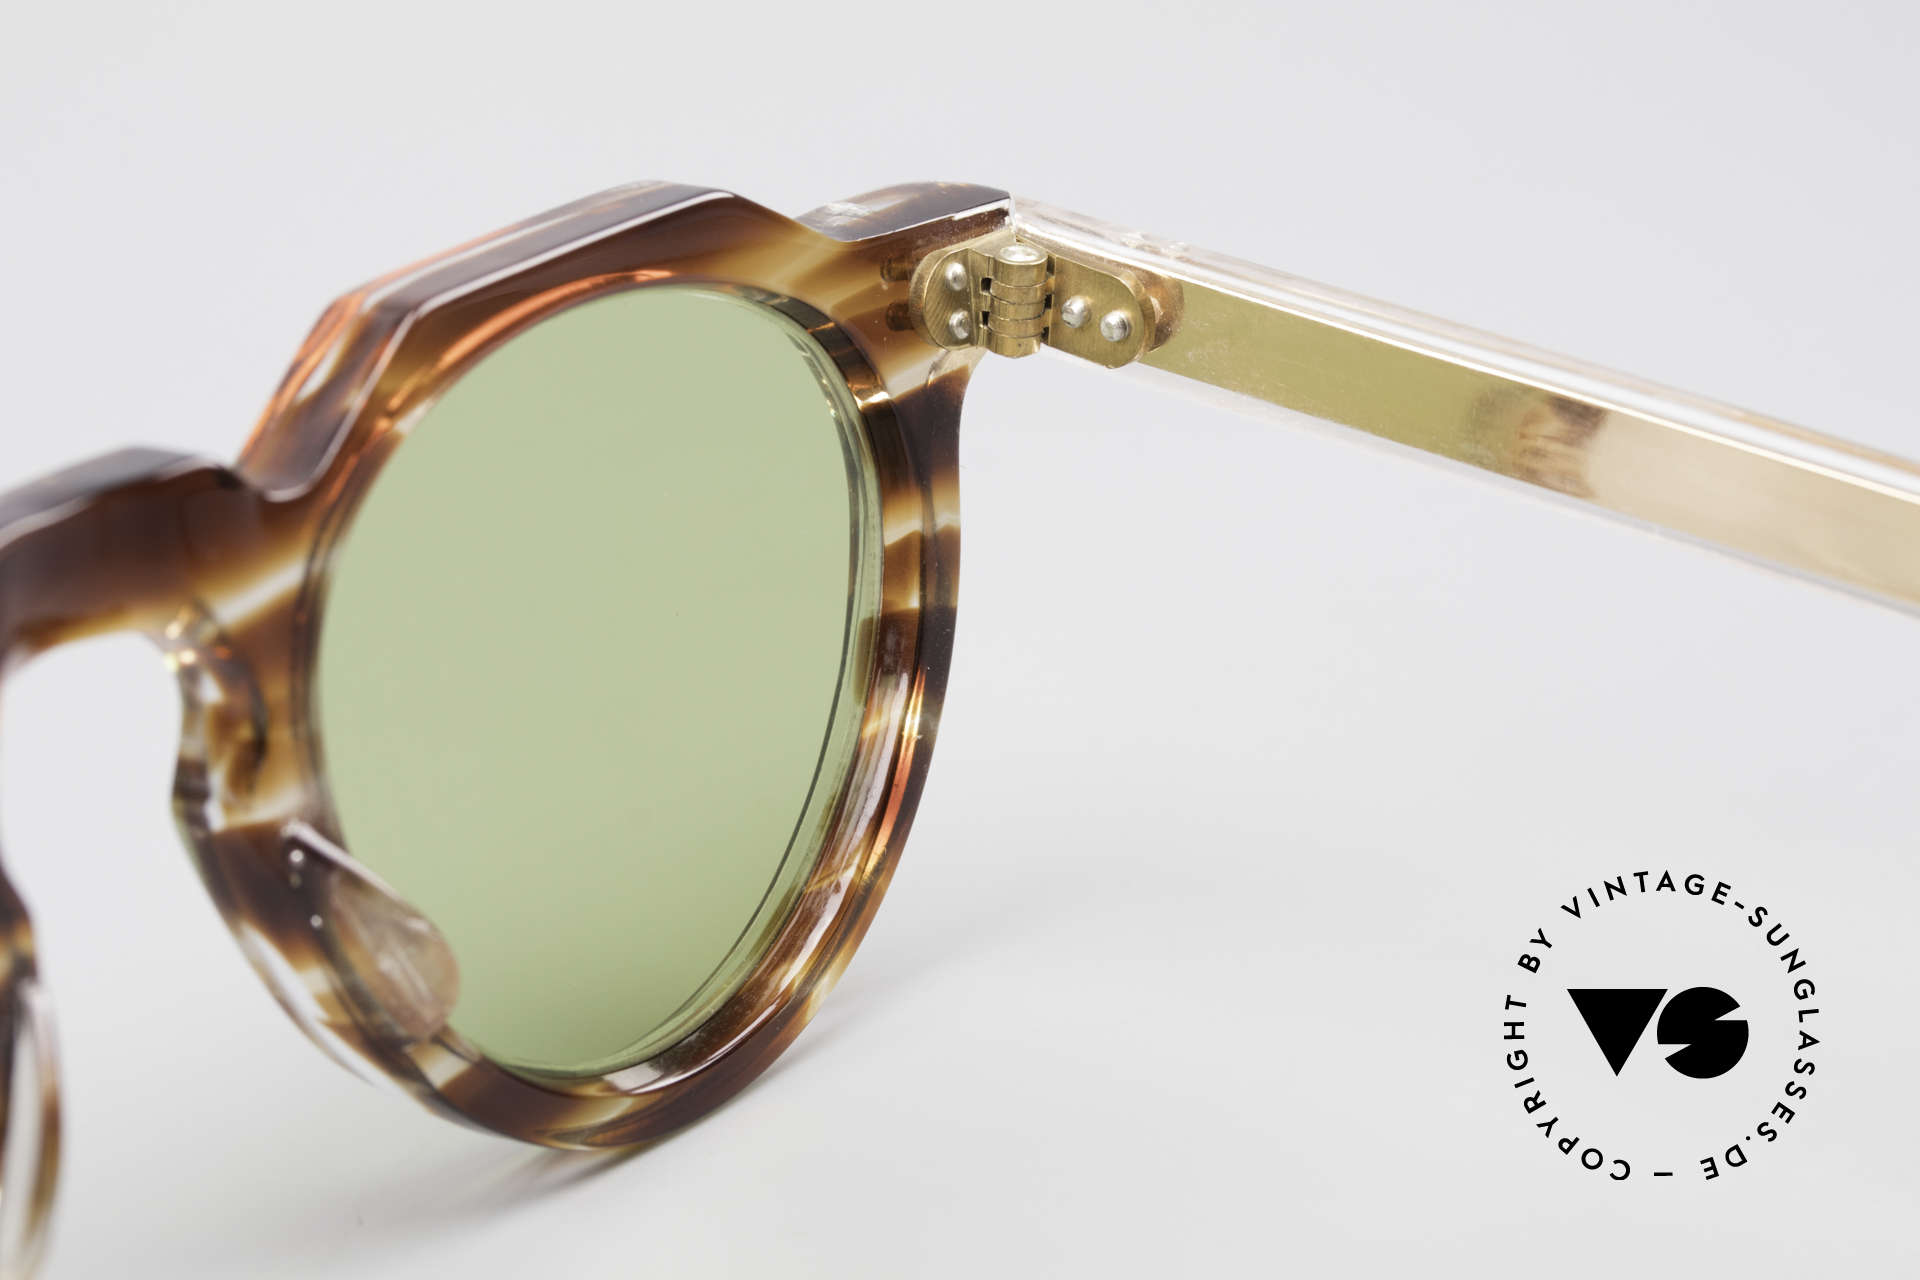 Lesca Panto 6mm Antique 1960's Sunglasses, Size: small, Made for Men and Women